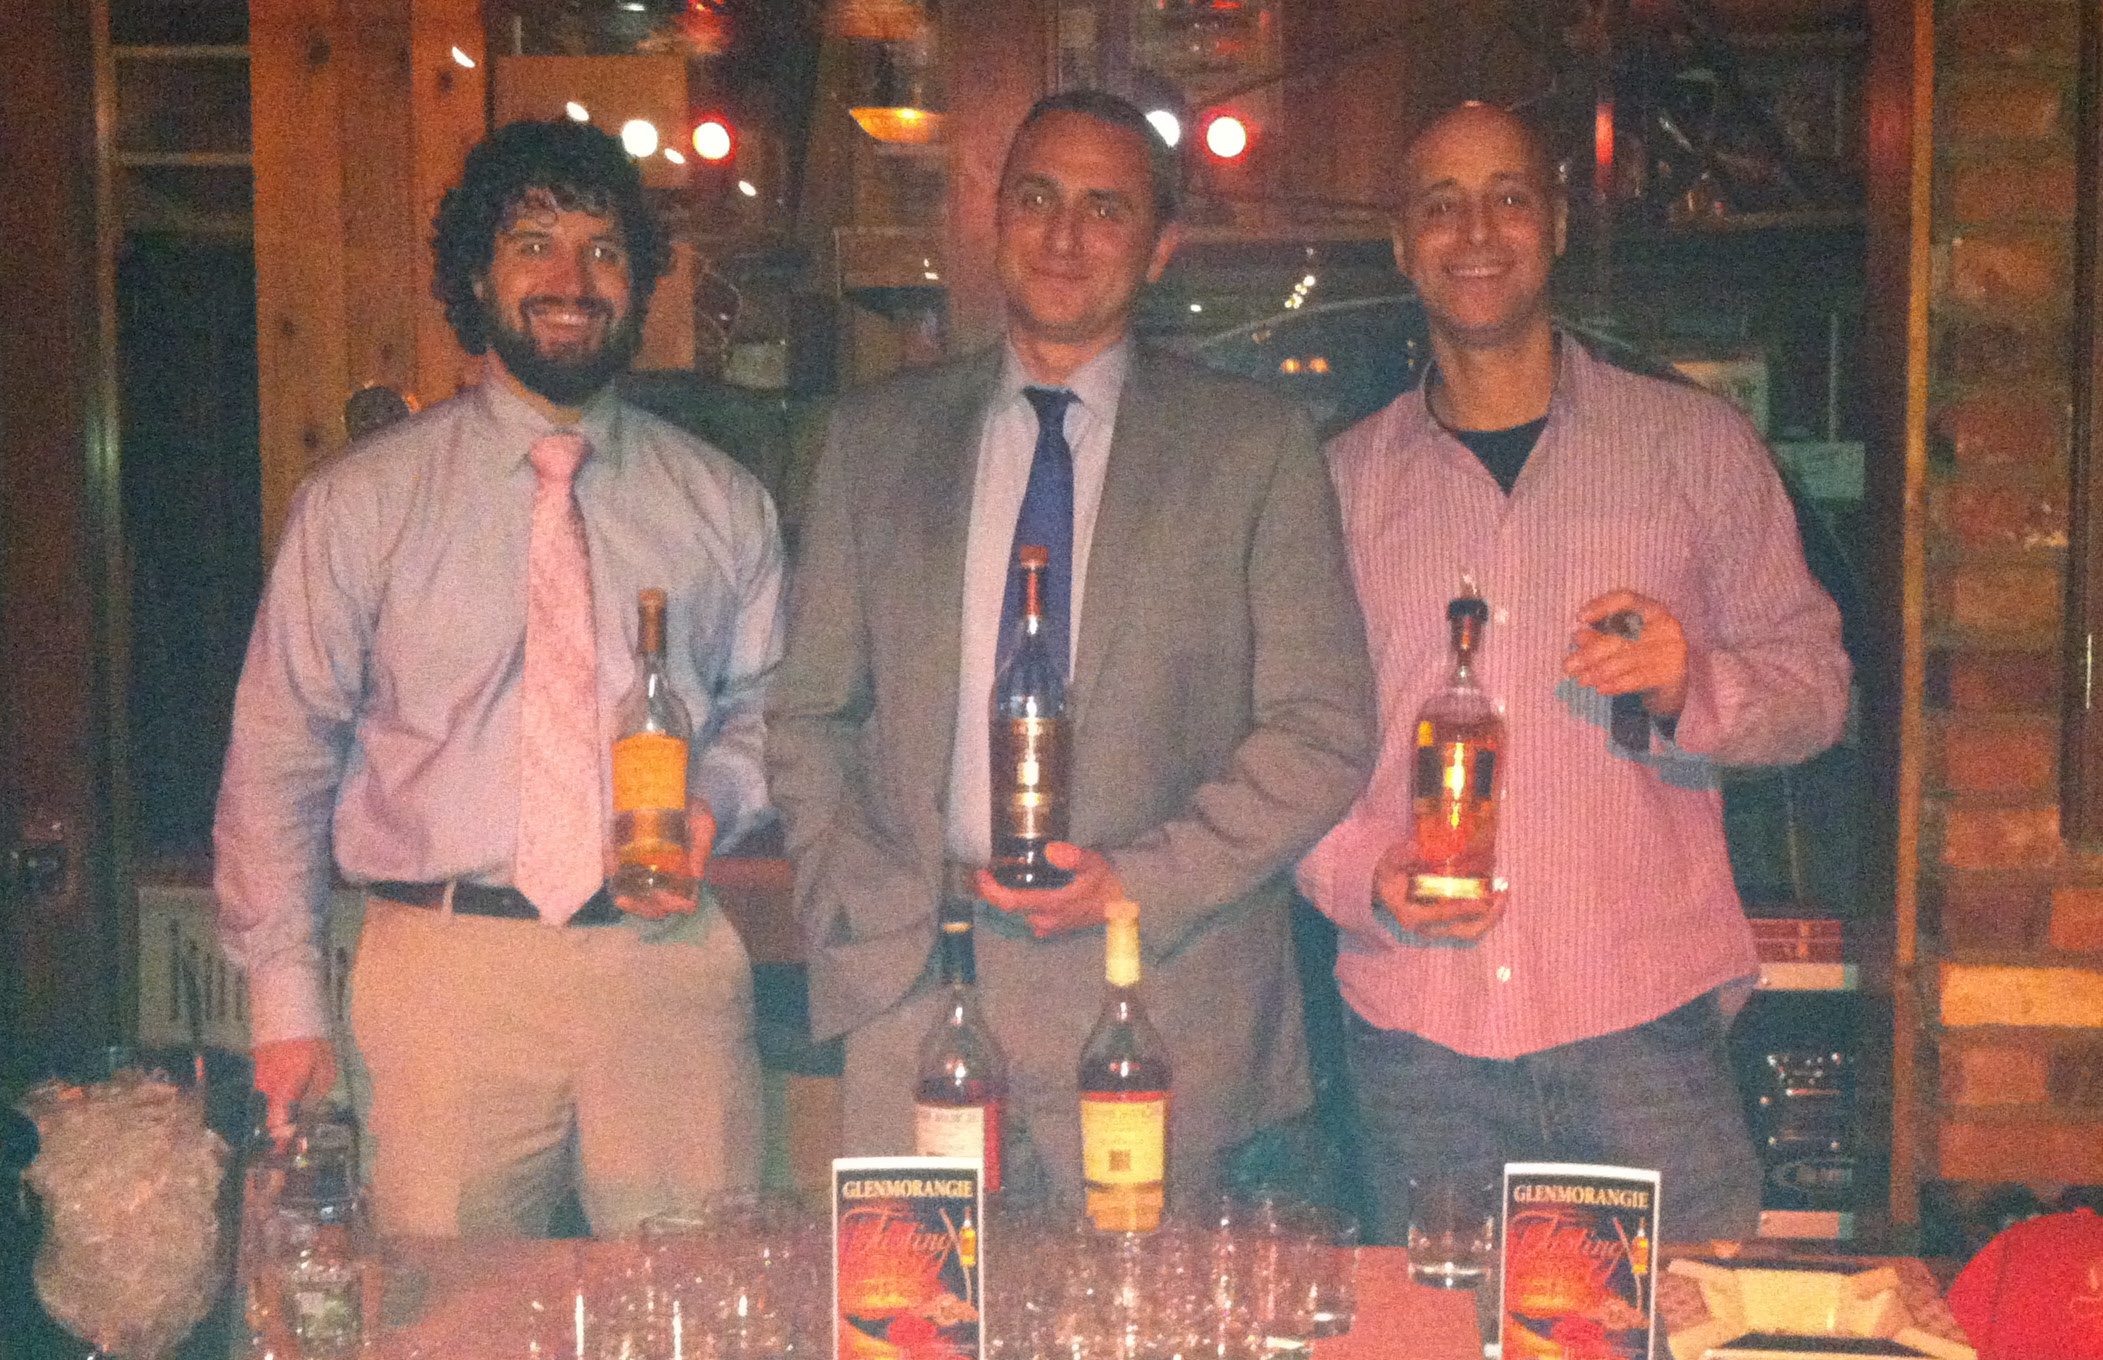 Glenmorangie Scotch and Cigar Tasting Held at Owl Shop